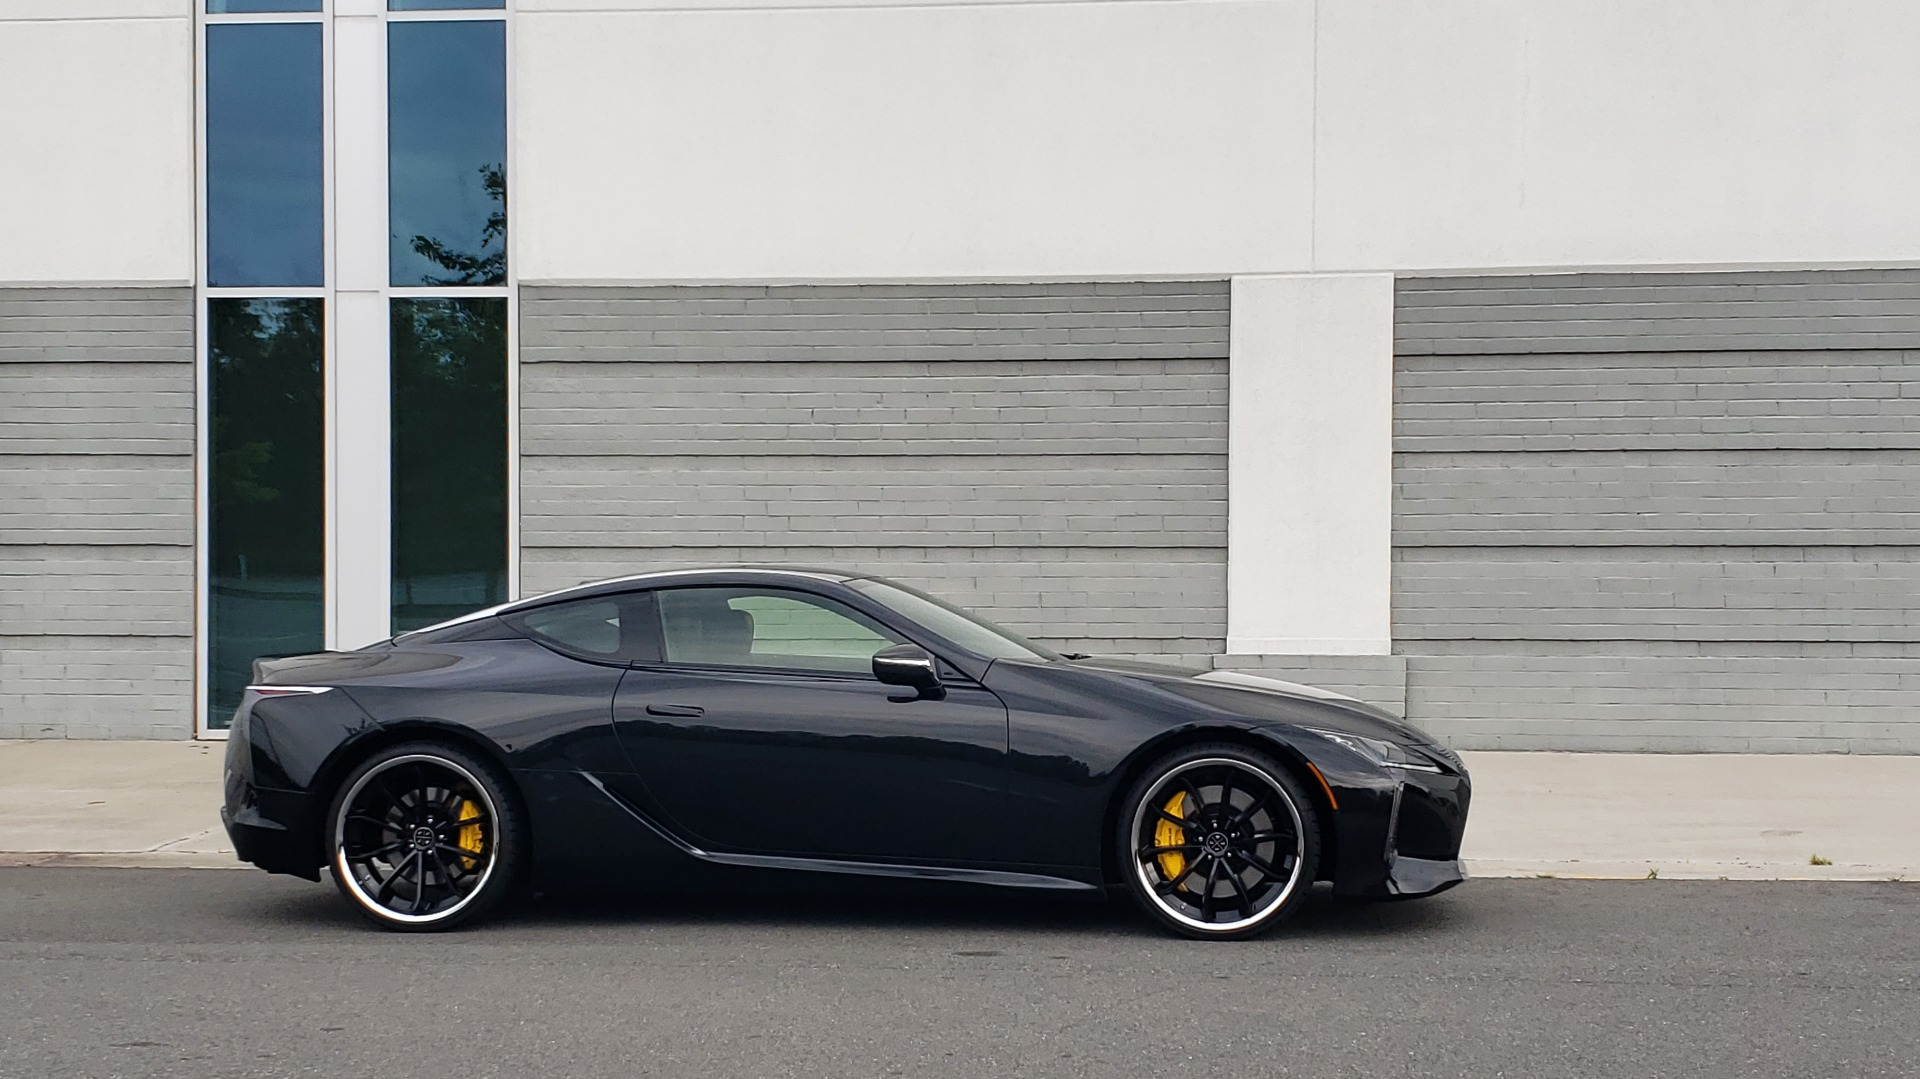 Used 2018 Lexus LC 500 COUPE / 5.0L V8 (471HP) / 10-SPD AUTO / HUD / SUNROOF / REARVIEW for sale Sold at Formula Imports in Charlotte NC 28227 8